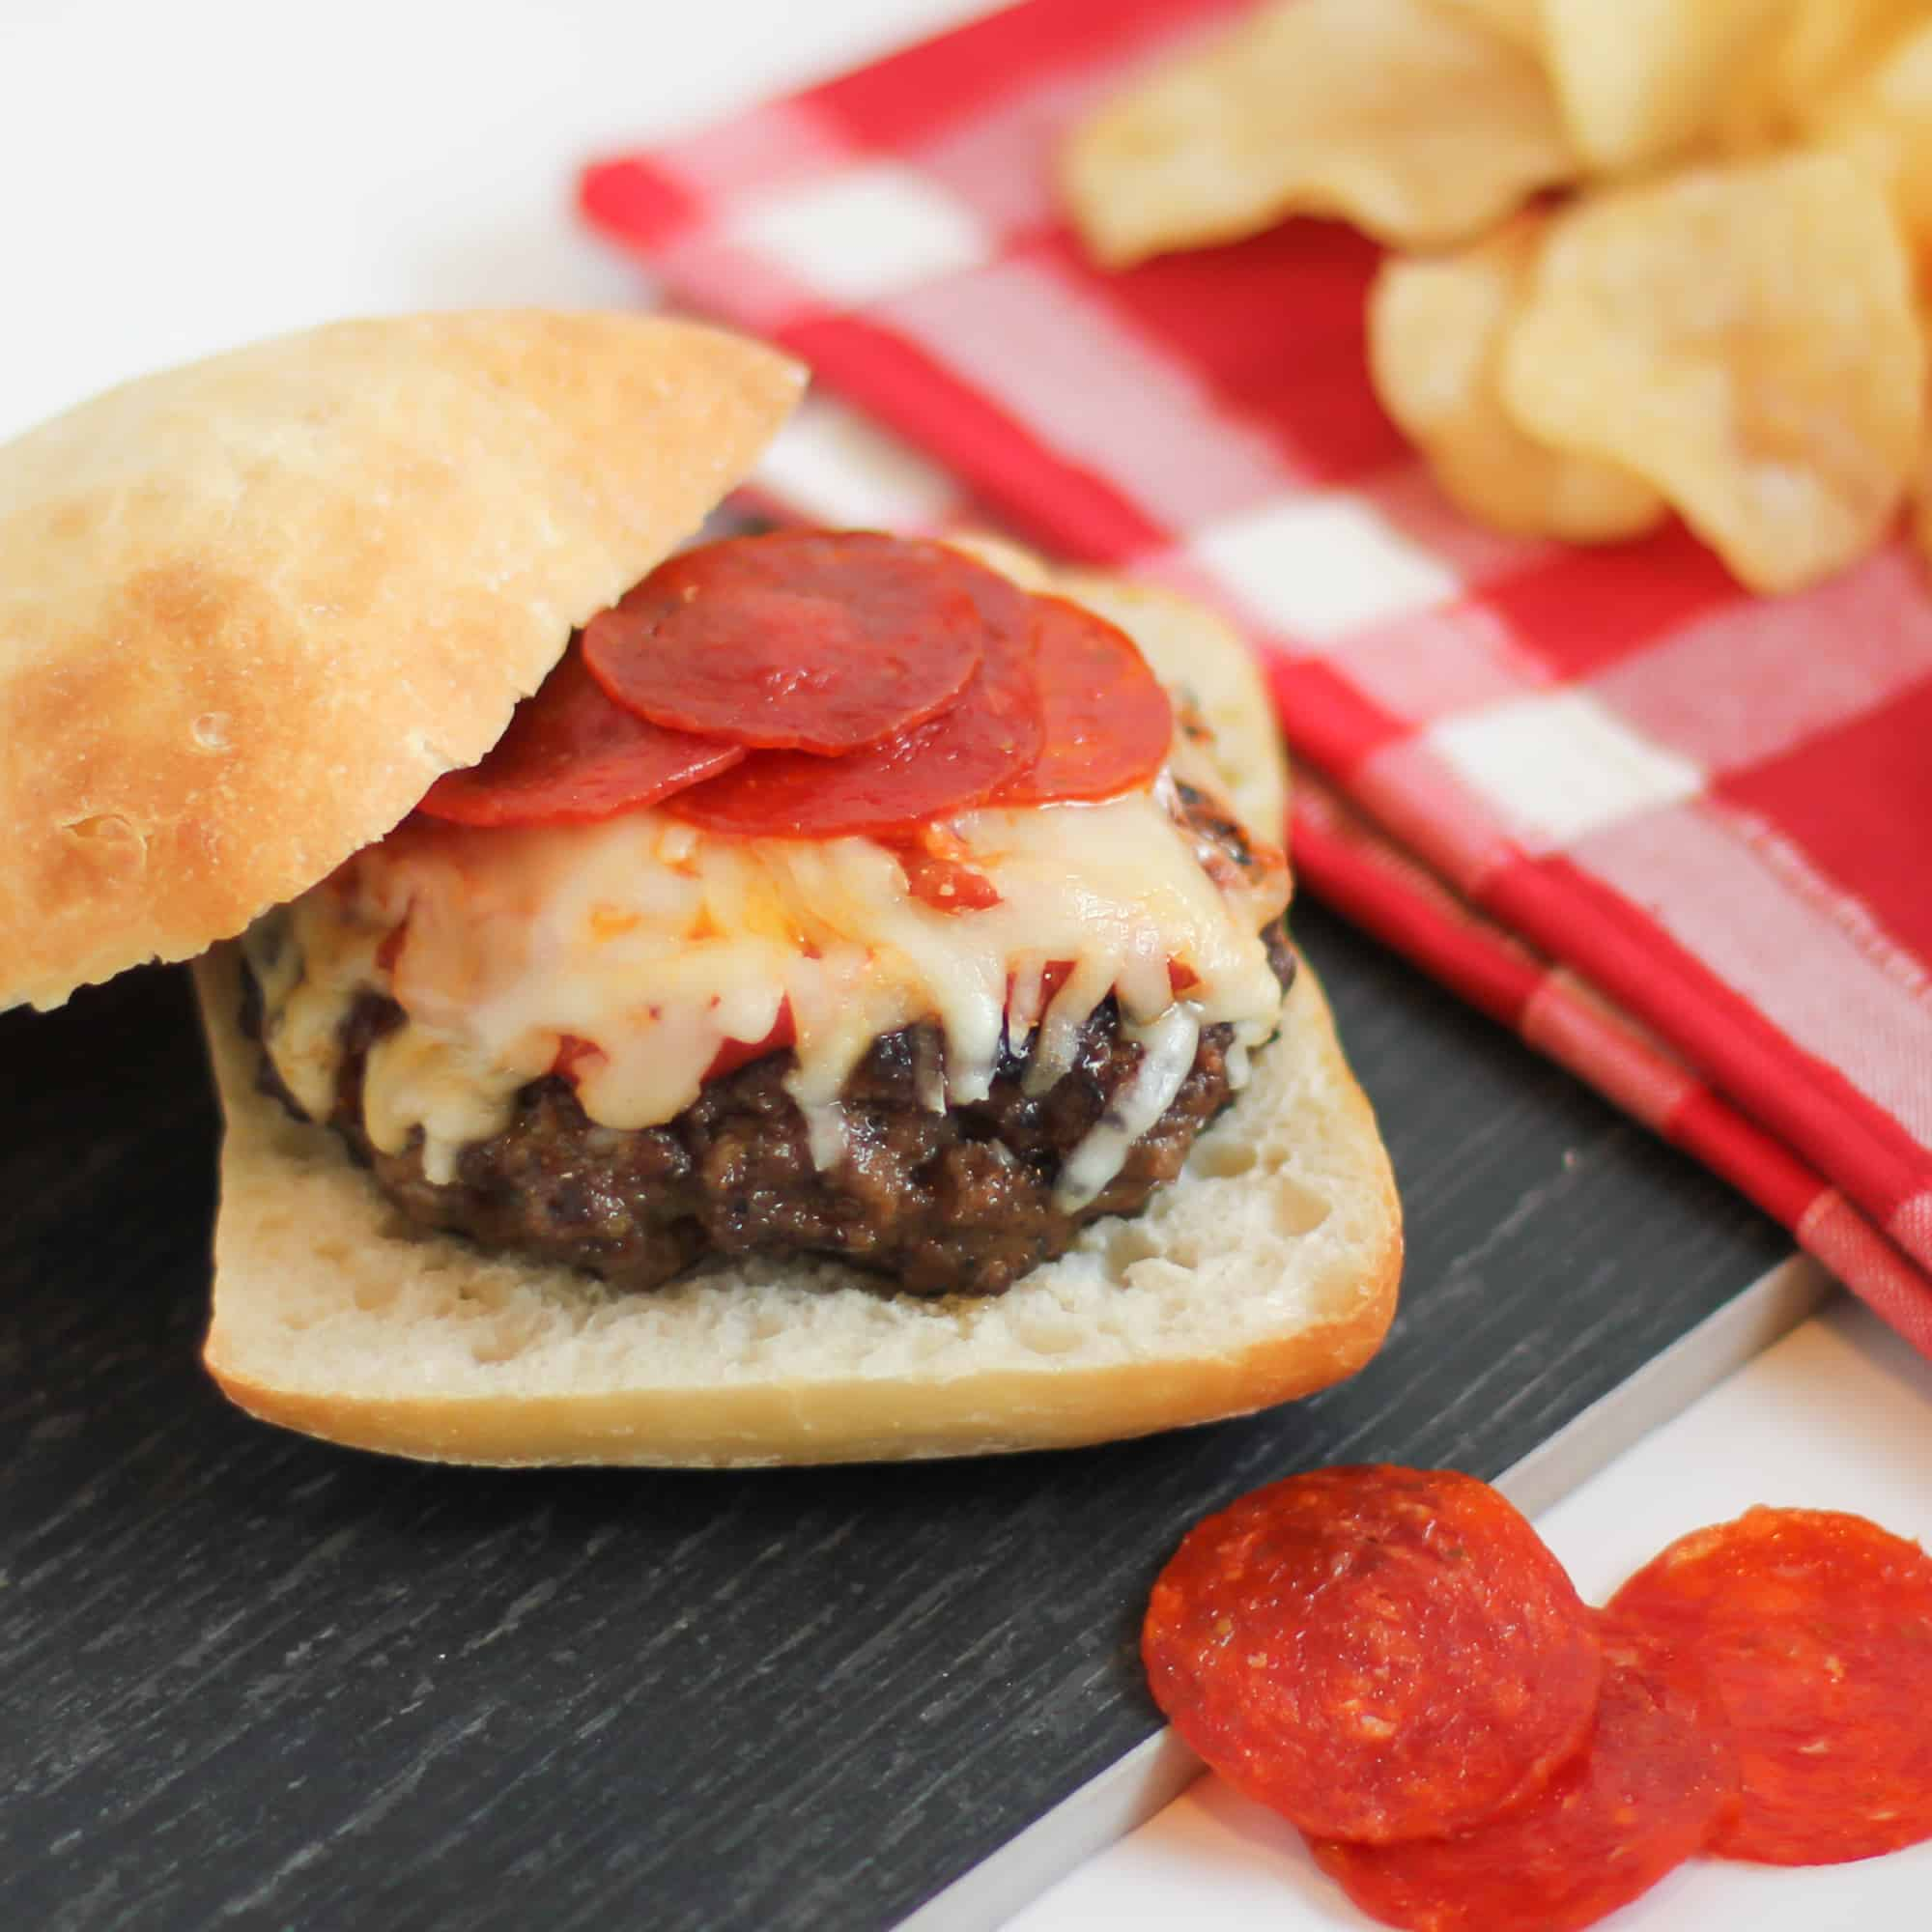 A homemade burger with pepperoni pizza toppings